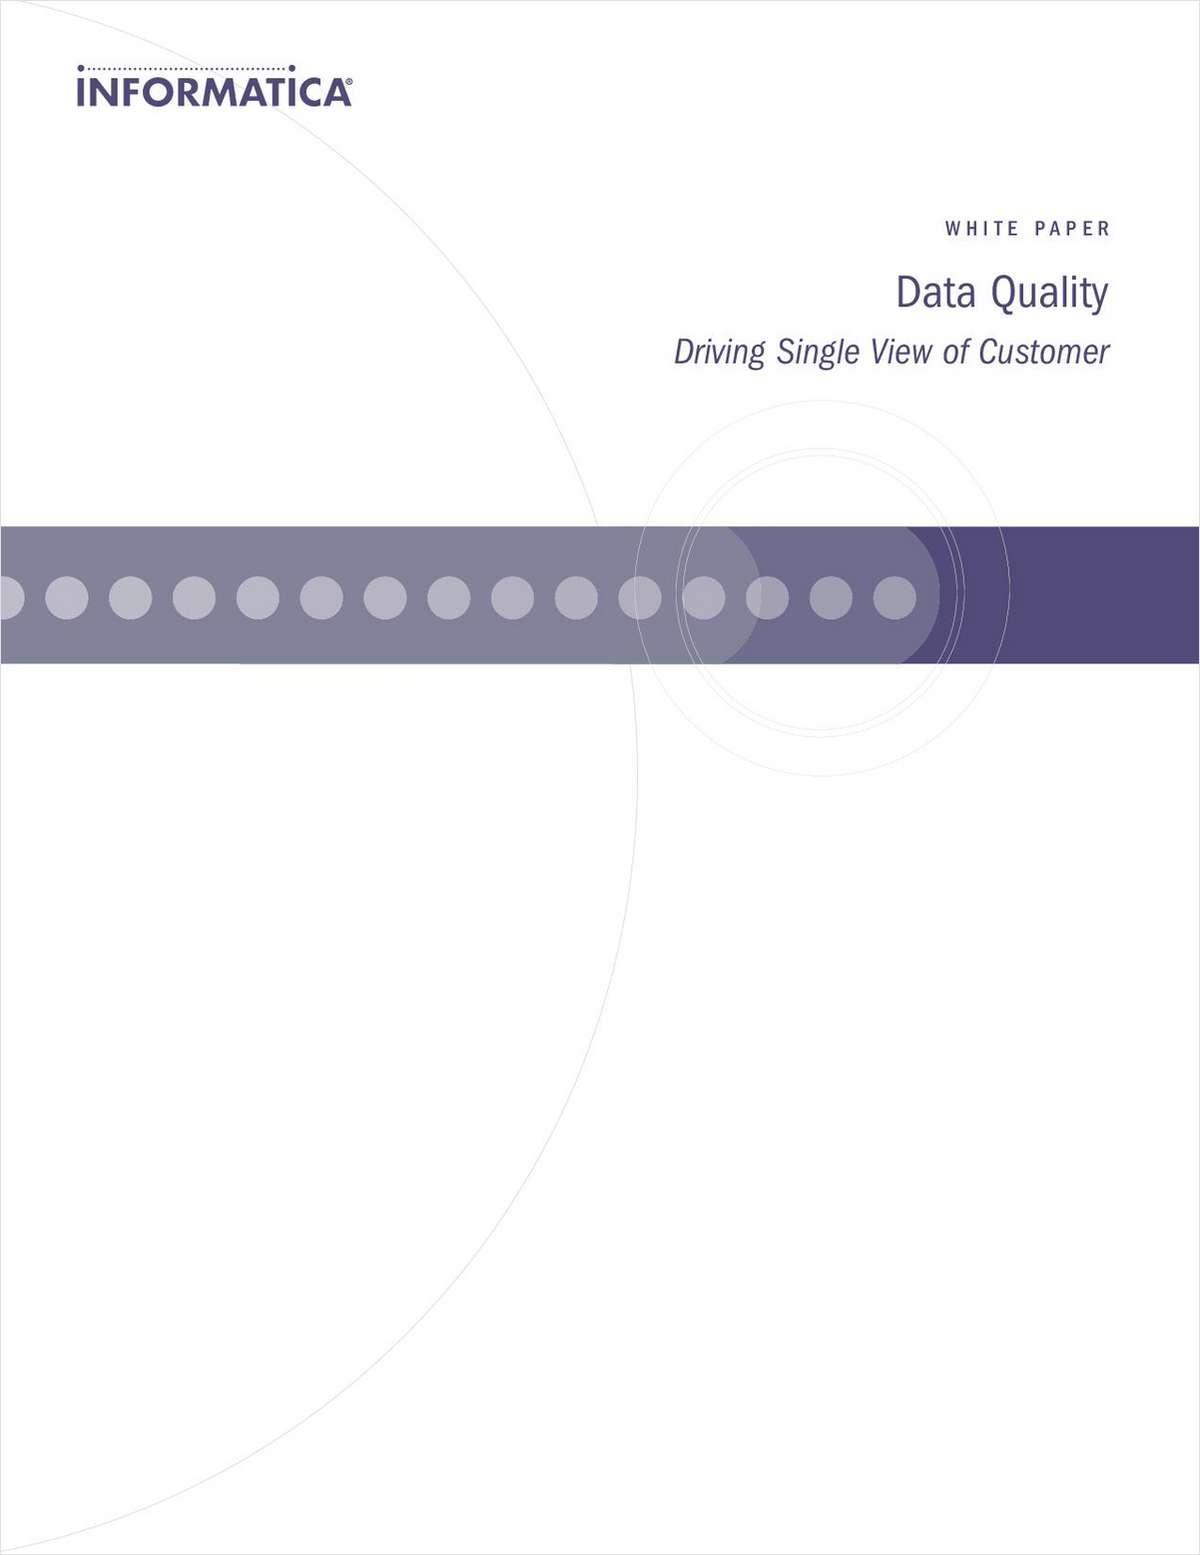 Data Quality: Driving Single View of Customer